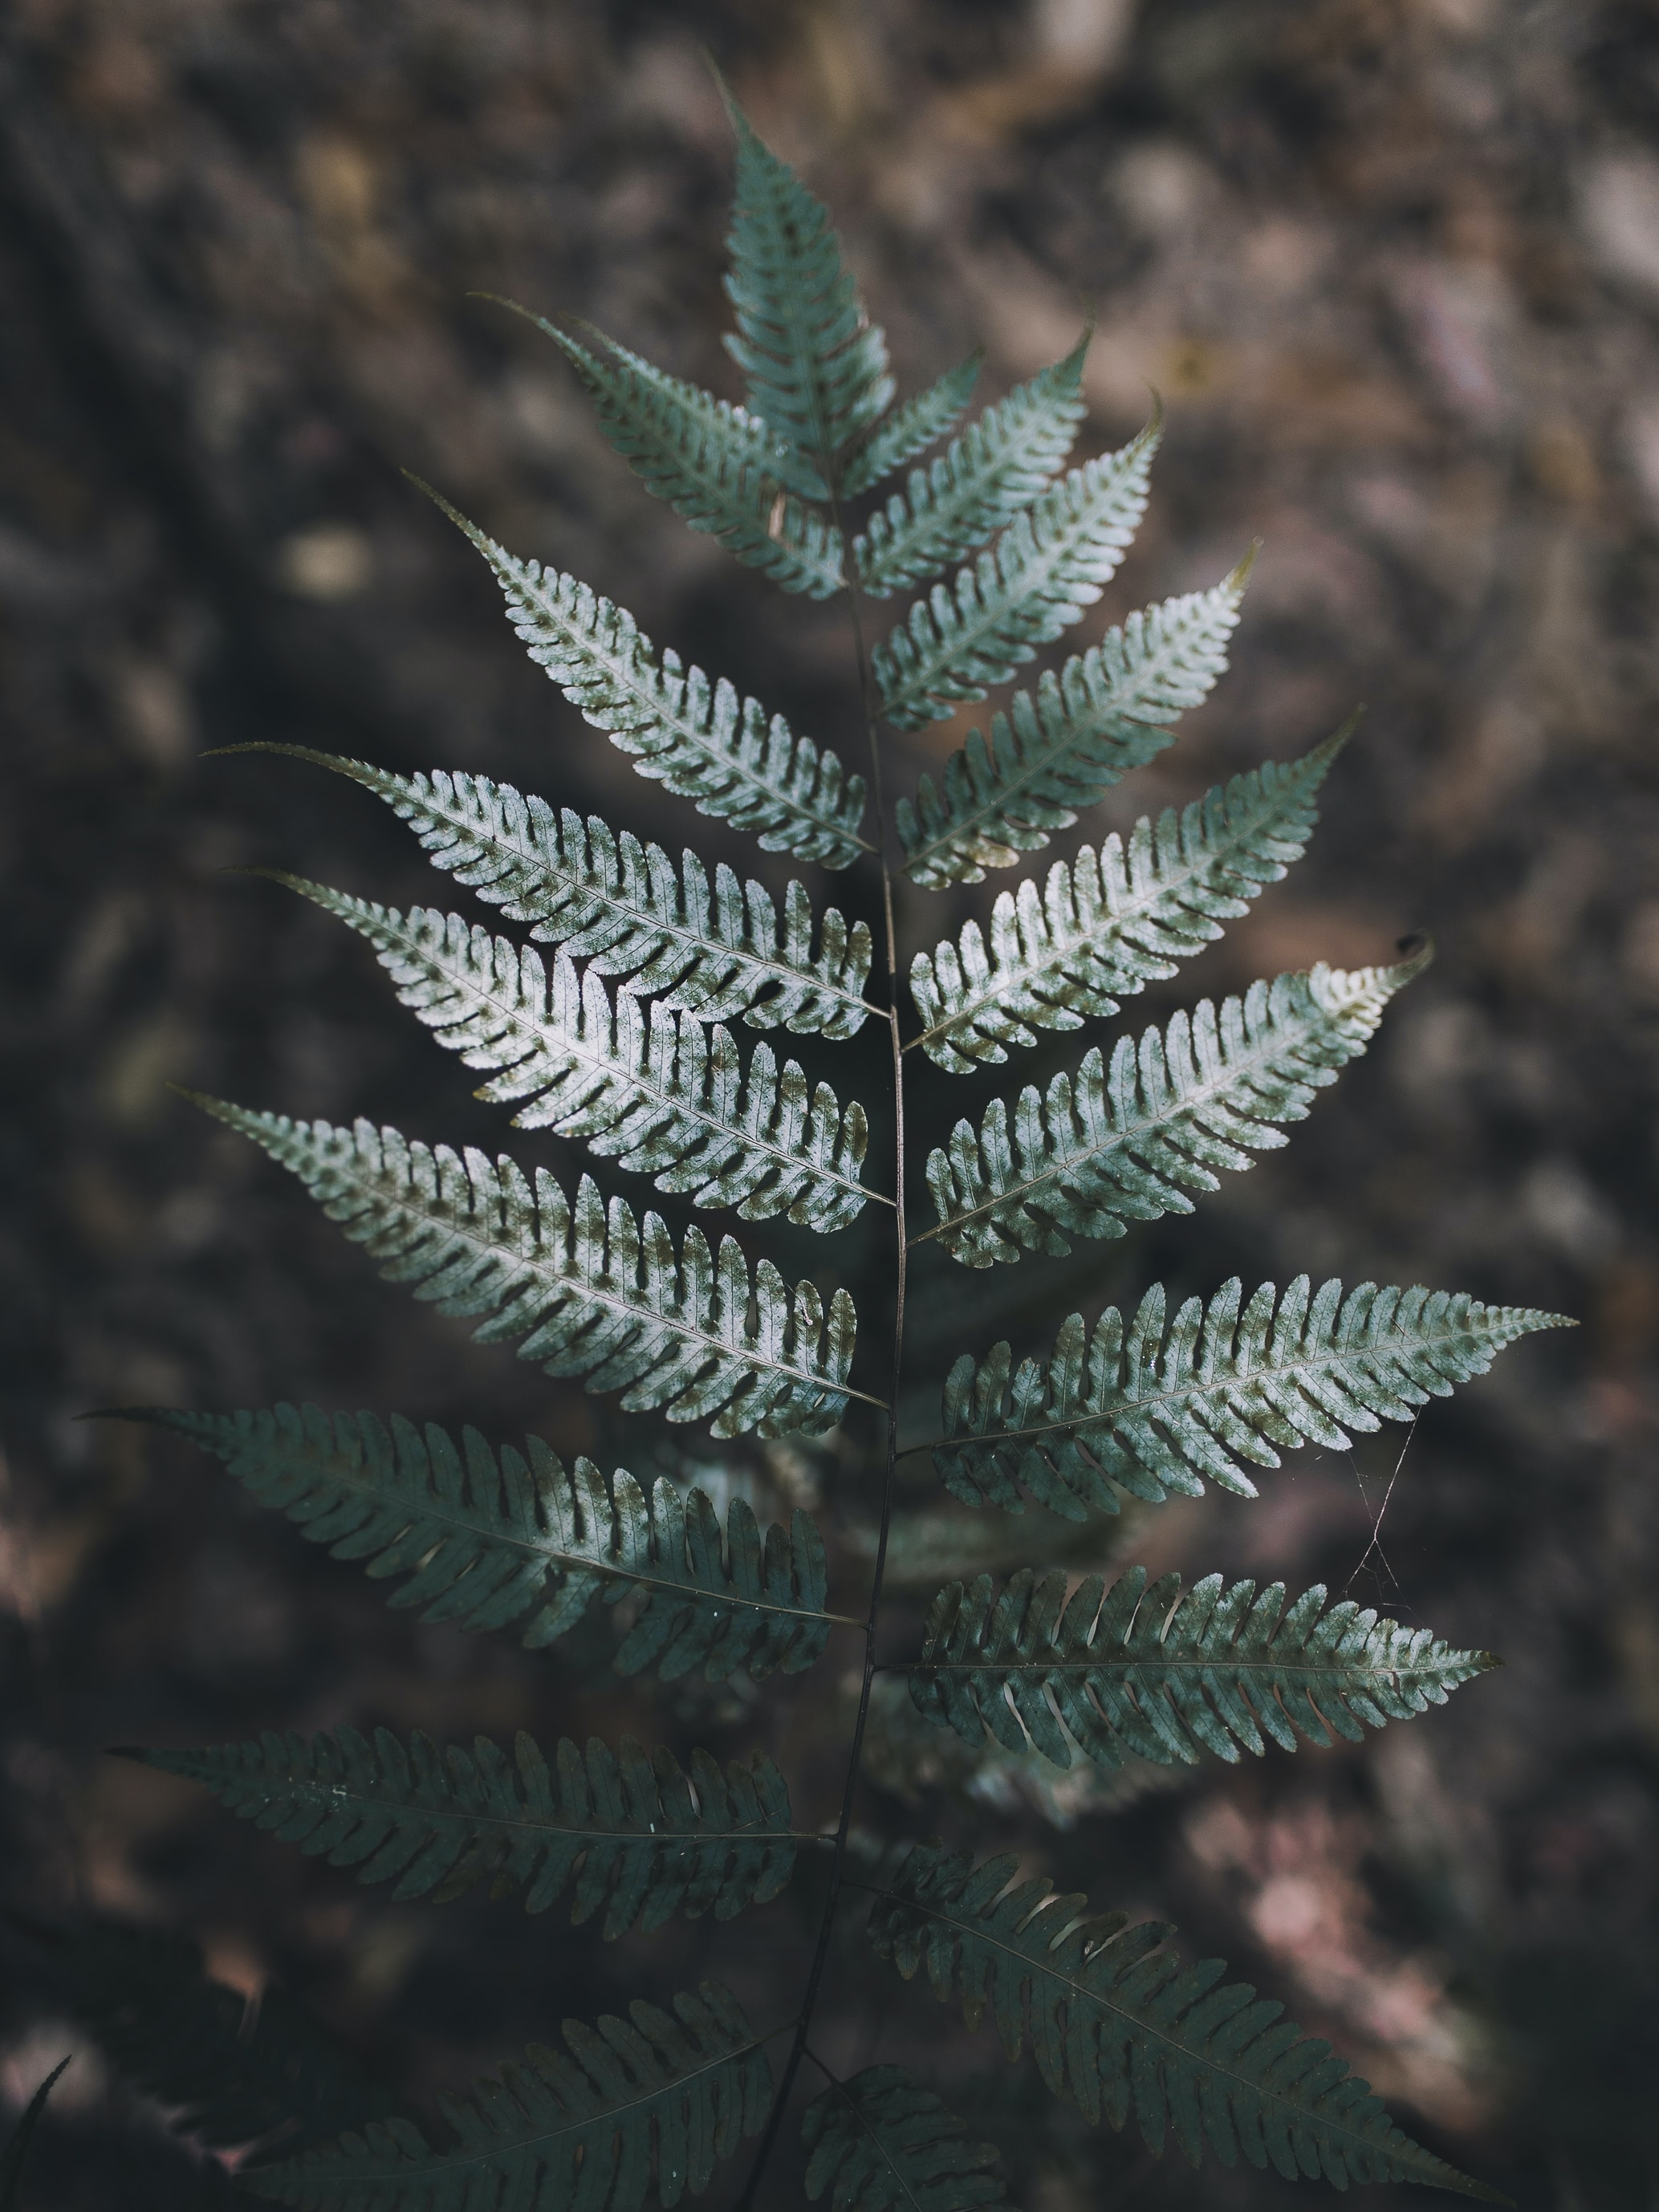 A top view of a dark green fern branch